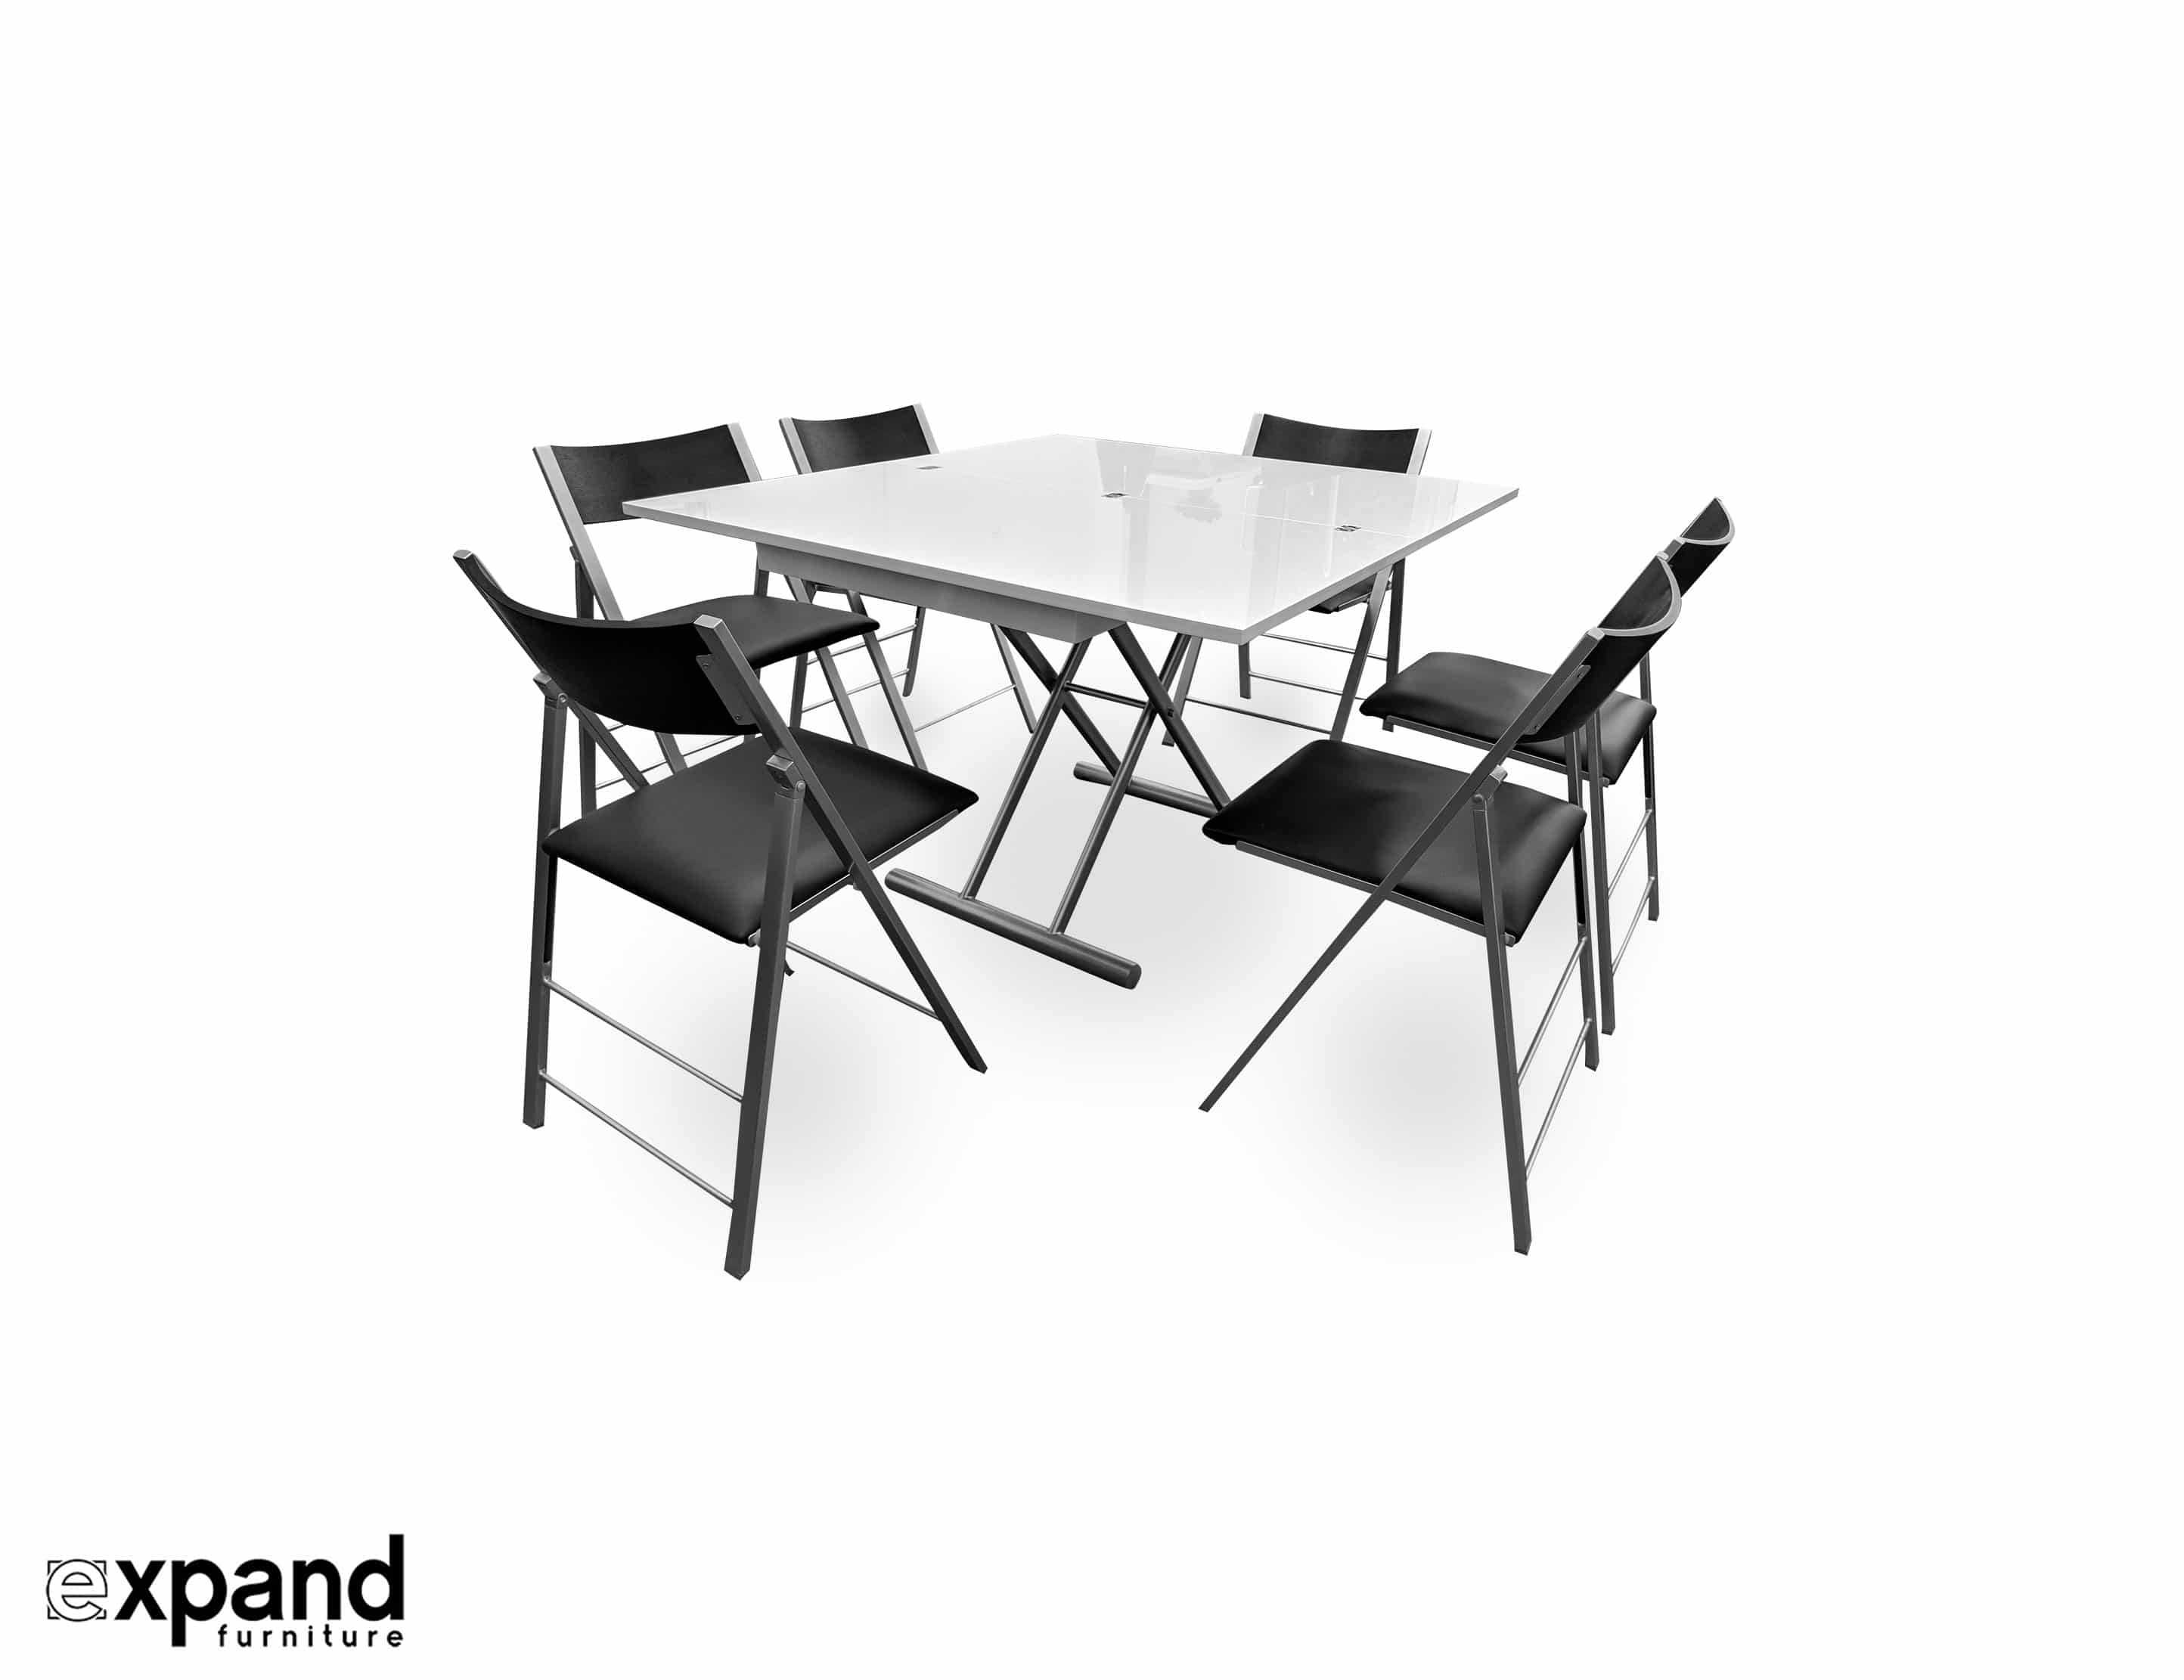 Pleasant The Alzare Raising Coffee Dining Table Set Caraccident5 Cool Chair Designs And Ideas Caraccident5Info